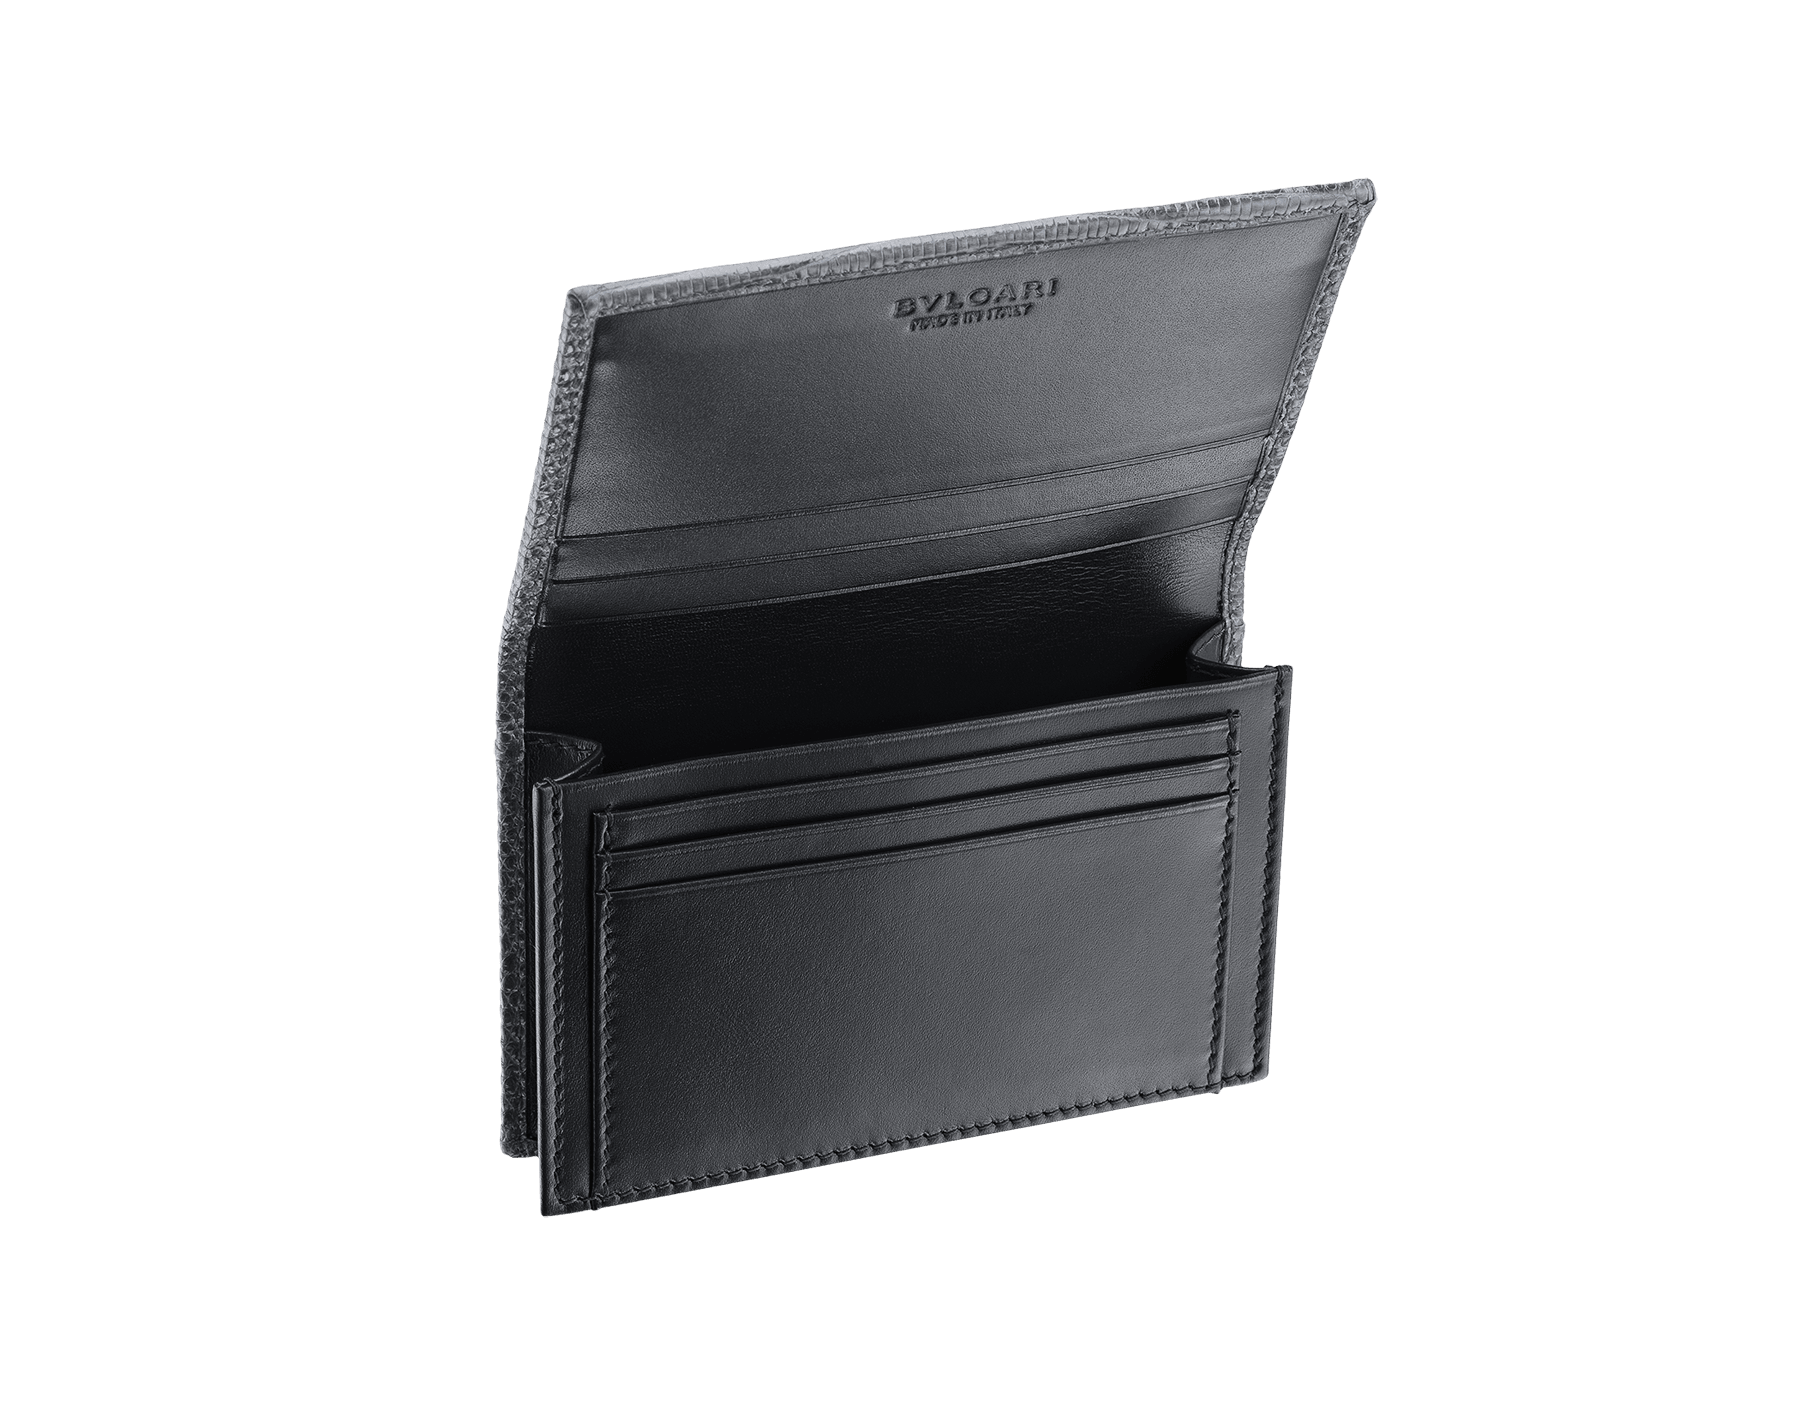 """BVLGARI BVLGARI"" business-card holder in shiny Charcoal Diamond grey lizard skin and black calfskin. Palladium-plated brass embellishment with logo. BBM-BC-HOLD-SIMPLE-sl image 2"